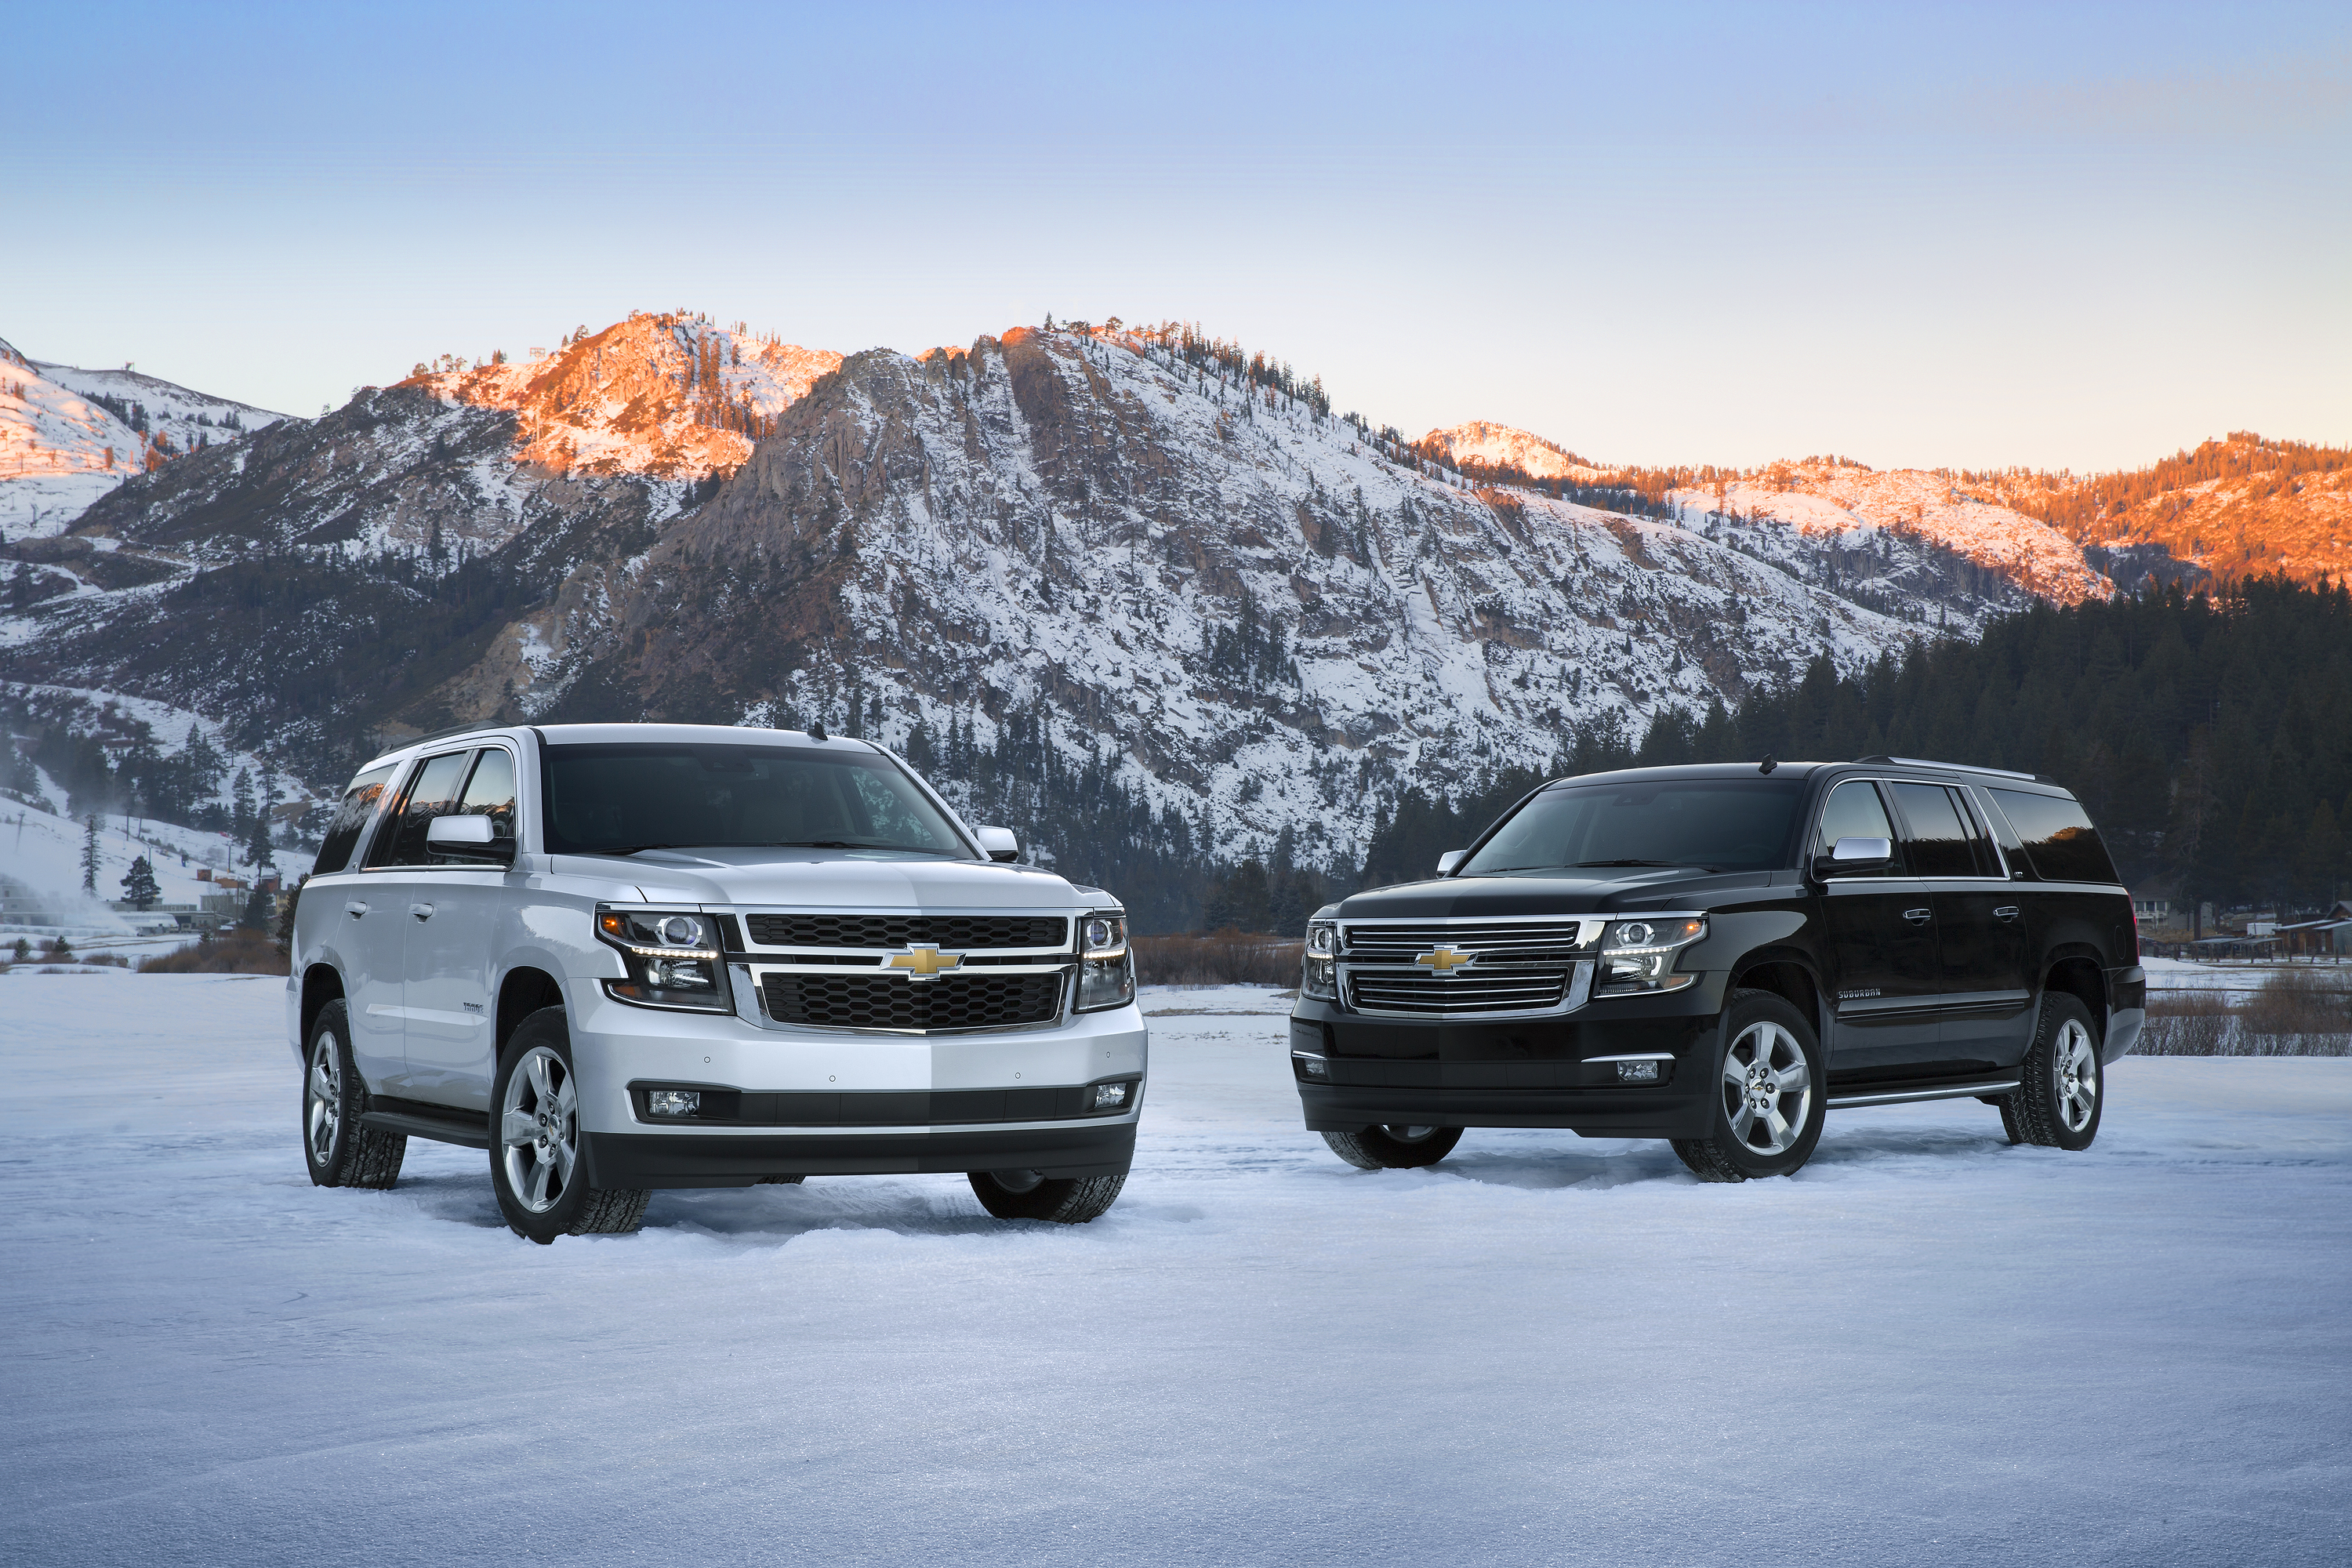 New Tahoe and Suburban Designed for Their Own Customers